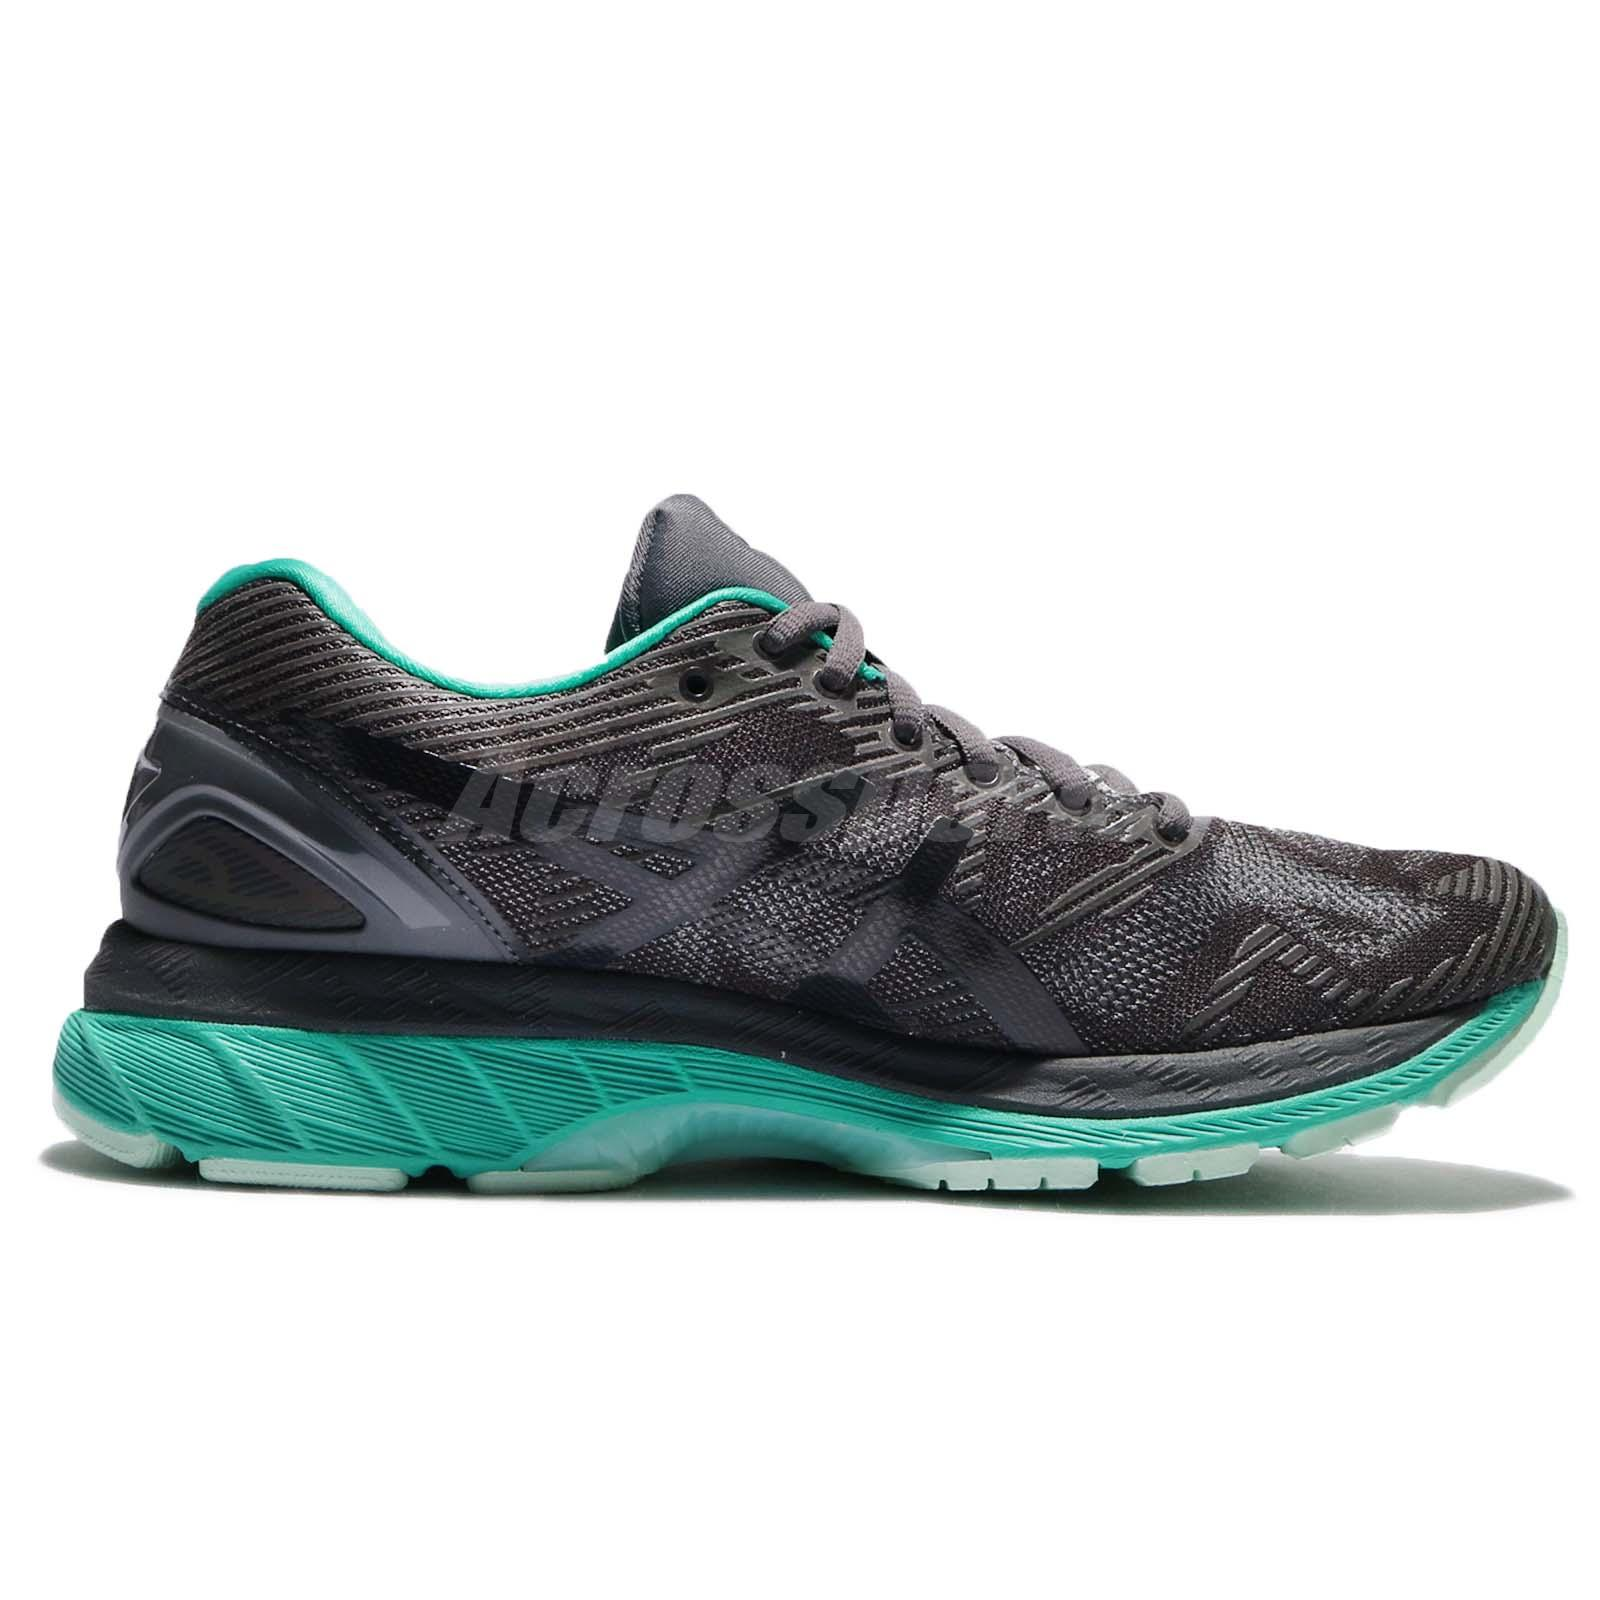 Asics Gel Nimbus 19 Lite Show Dark Grey Green Women Running Shoes T7C8N 9590